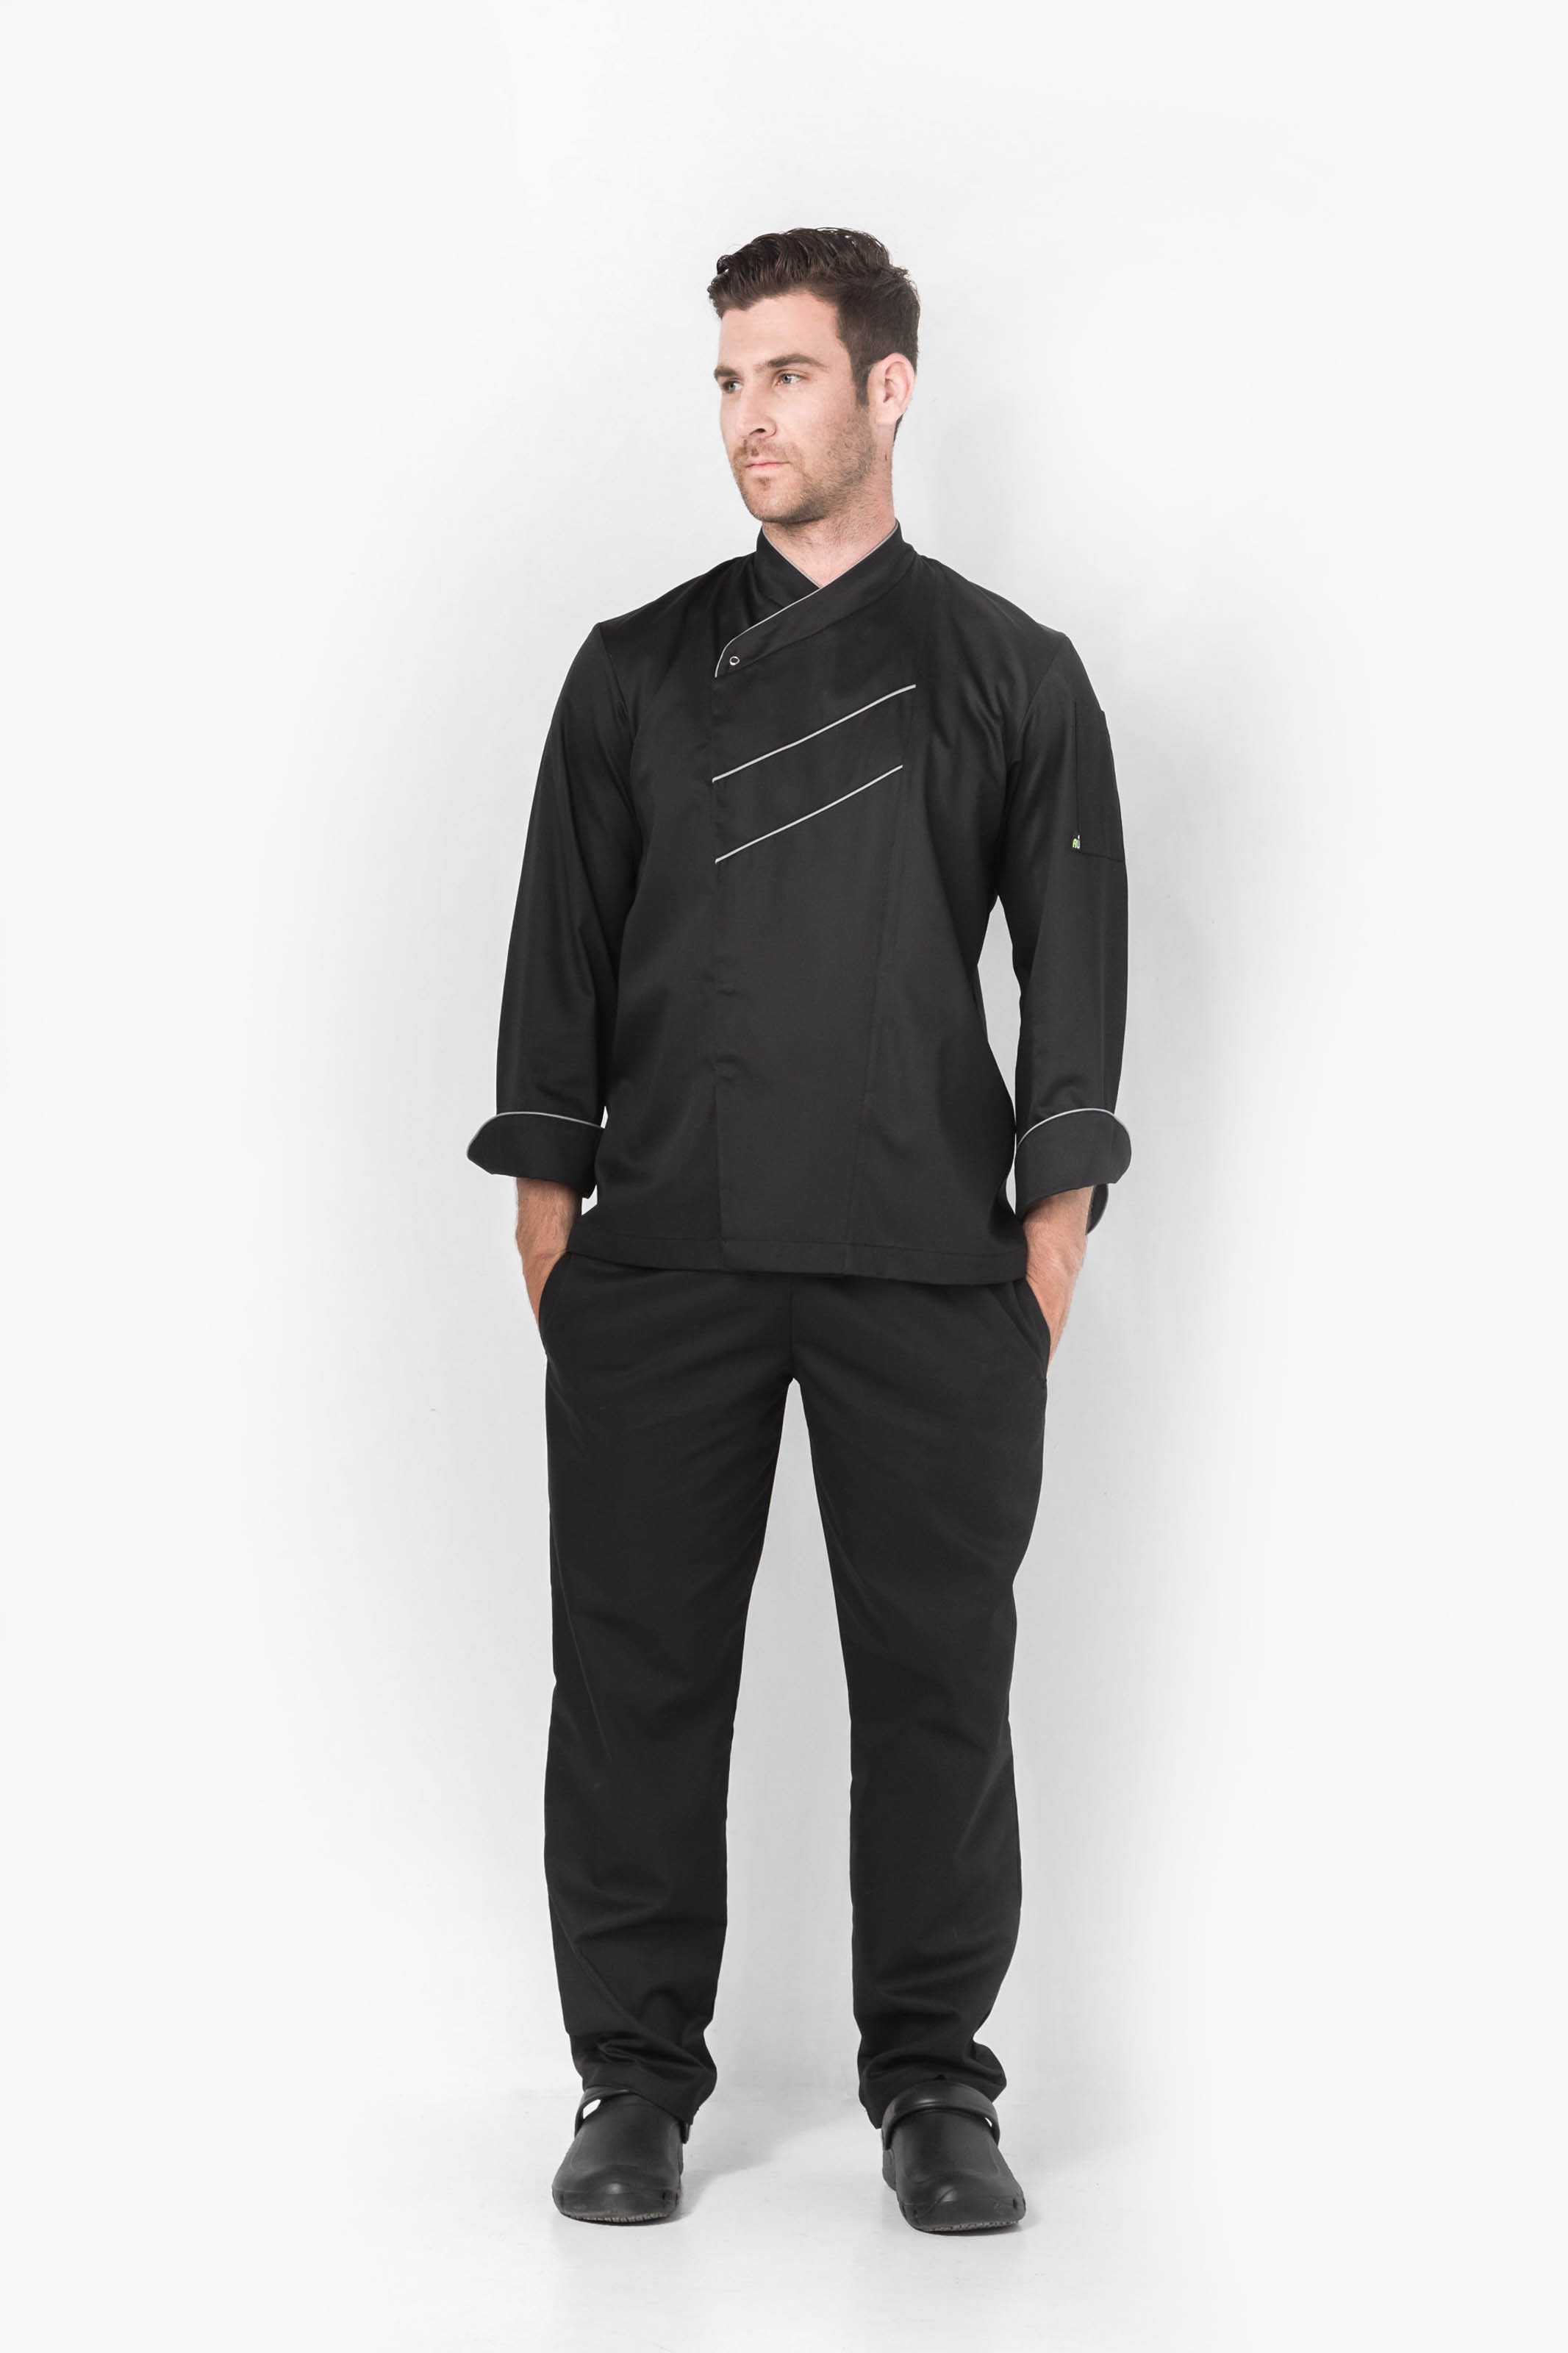 Aris Uniforms-UCJ06-Aris Chef Jacket